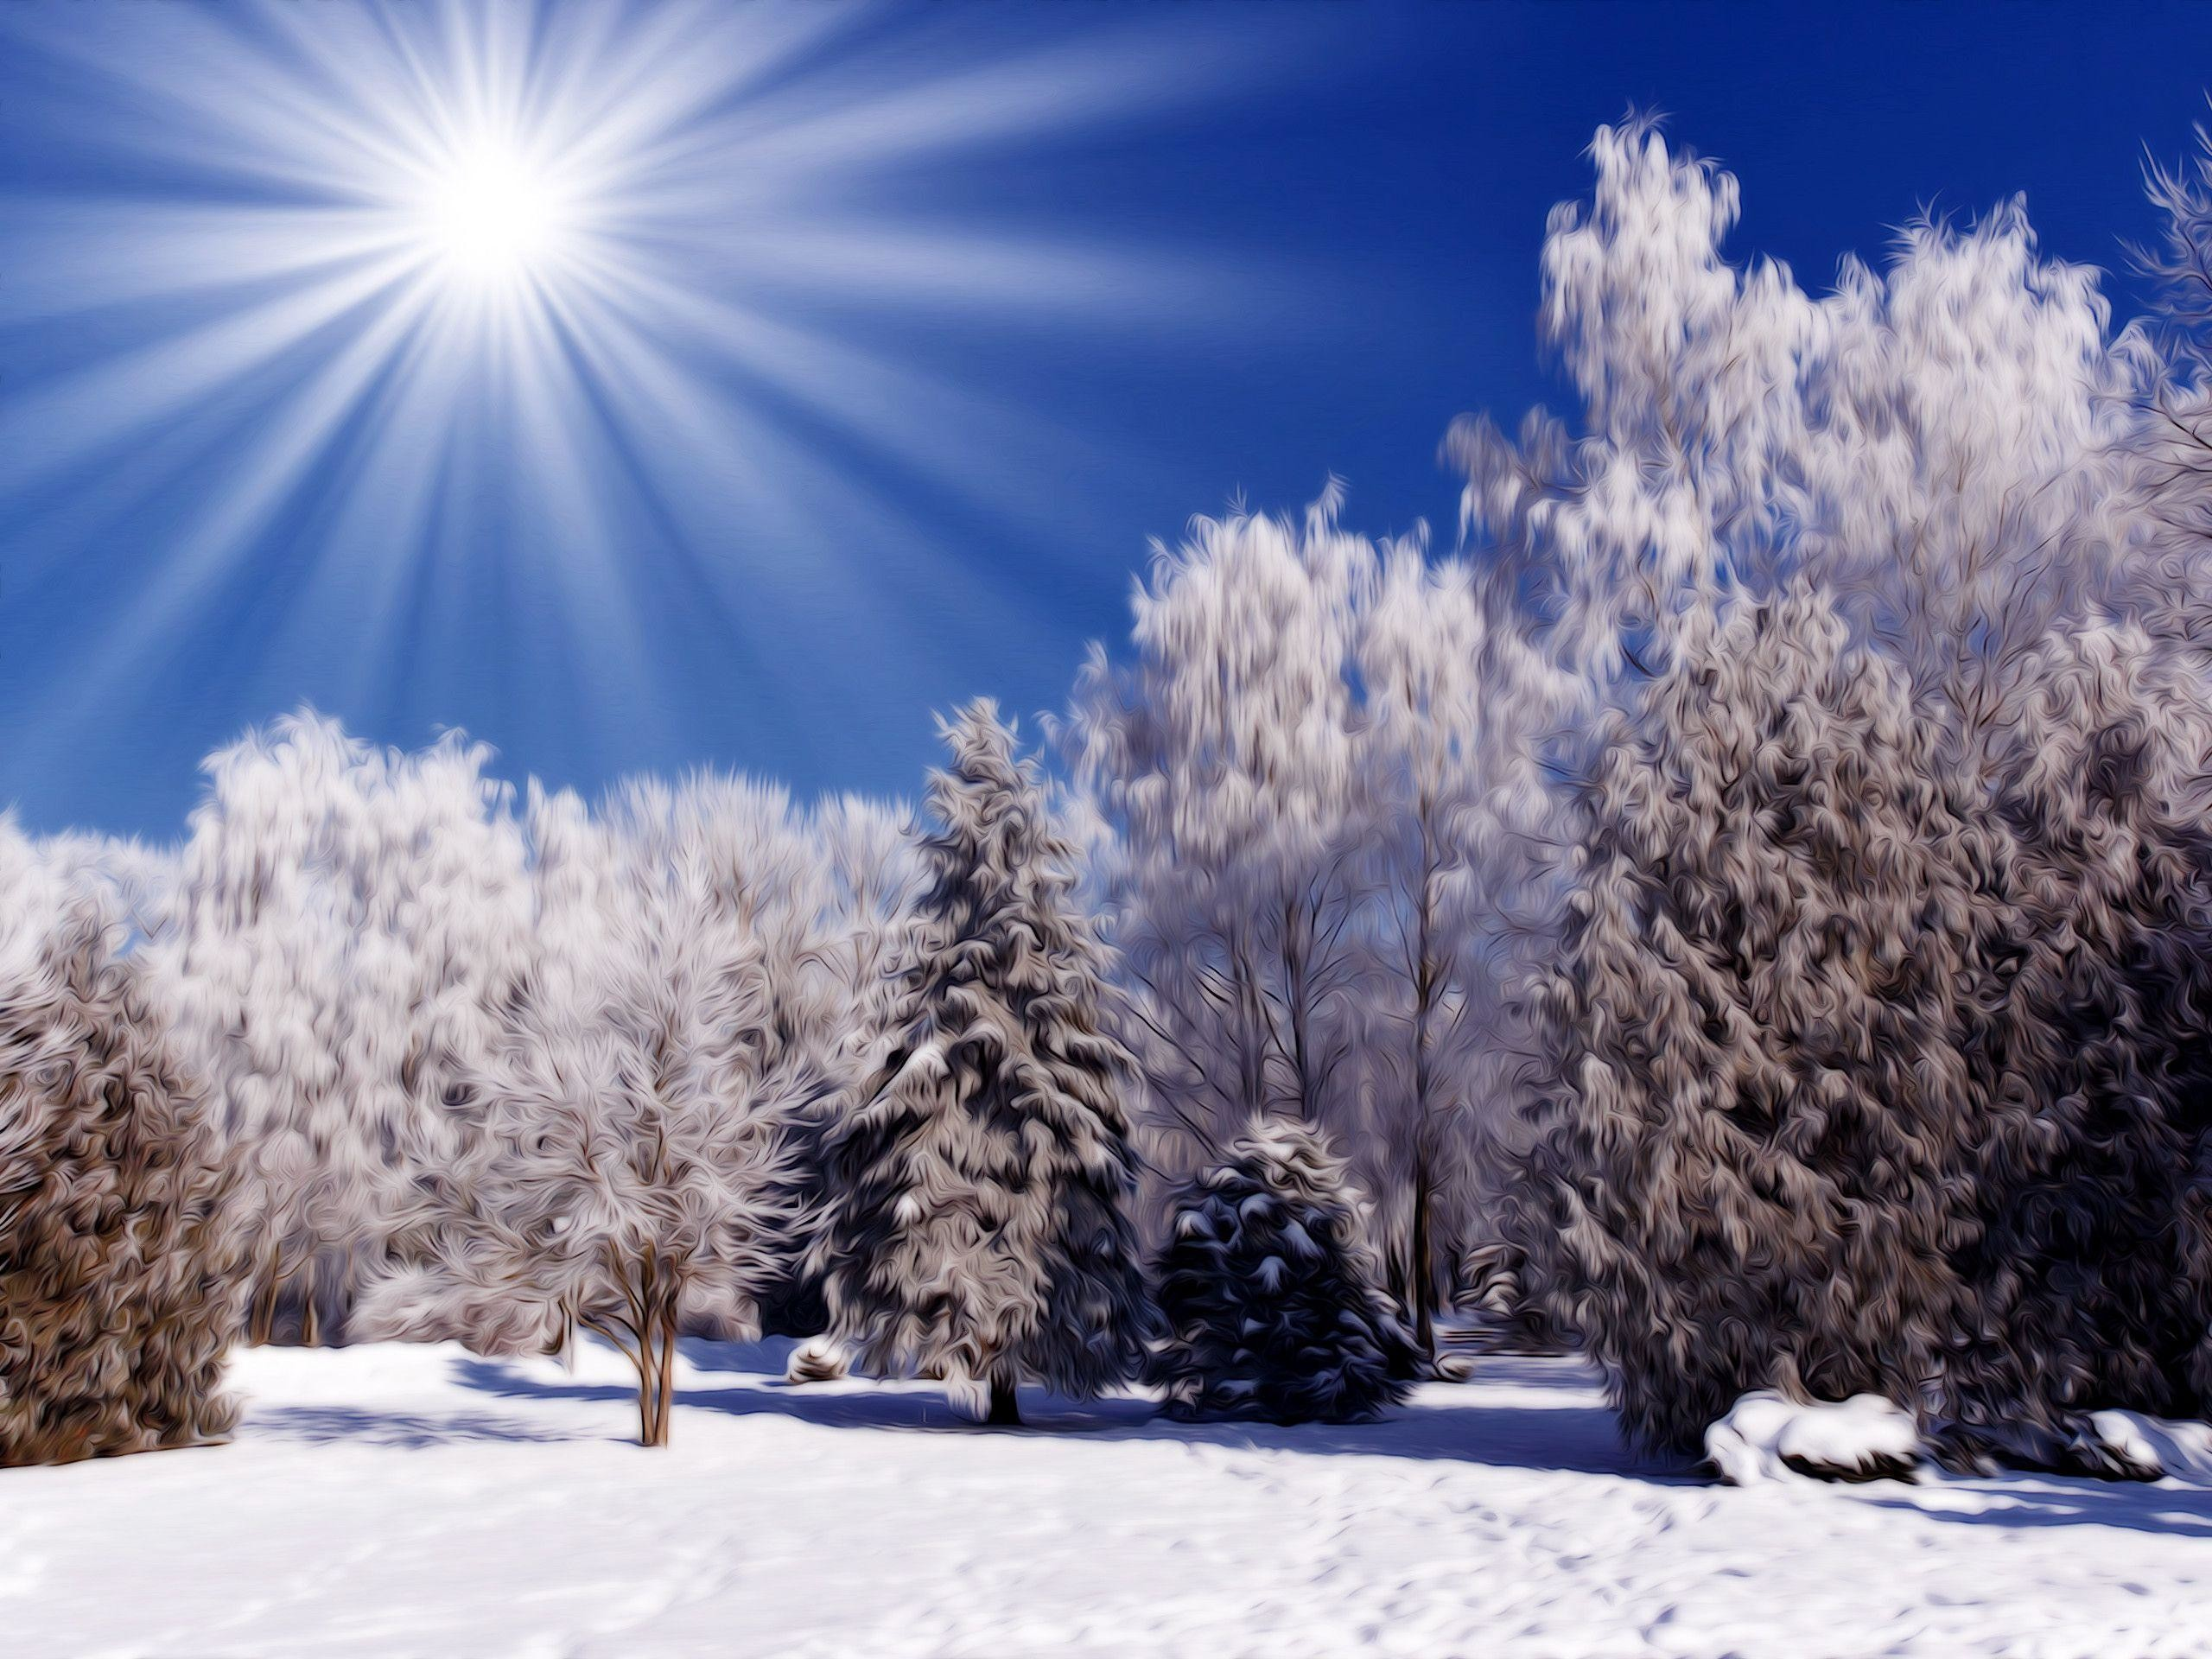 2560x1920 Winter Nature Scenes Wallpapers (69 Wallpapers)